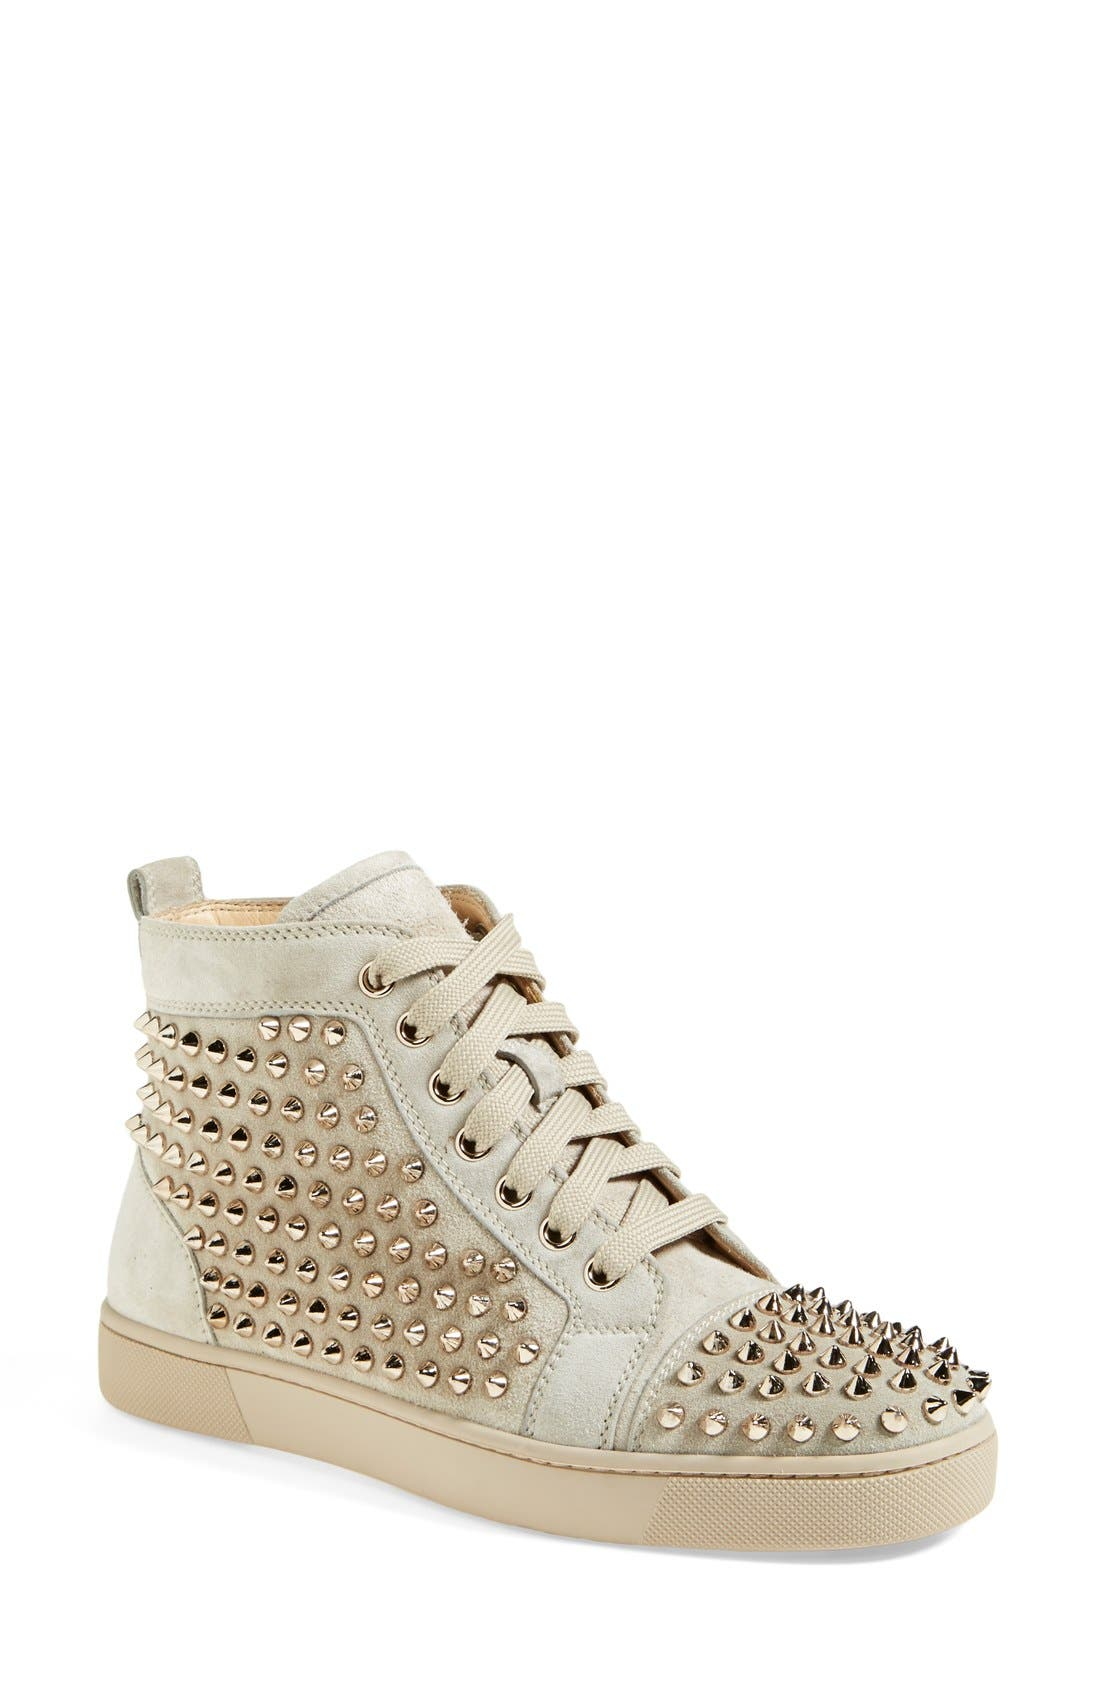 Alternate Image 1 Selected - Christian Louboutin 'Louis' Spiked Sneaker